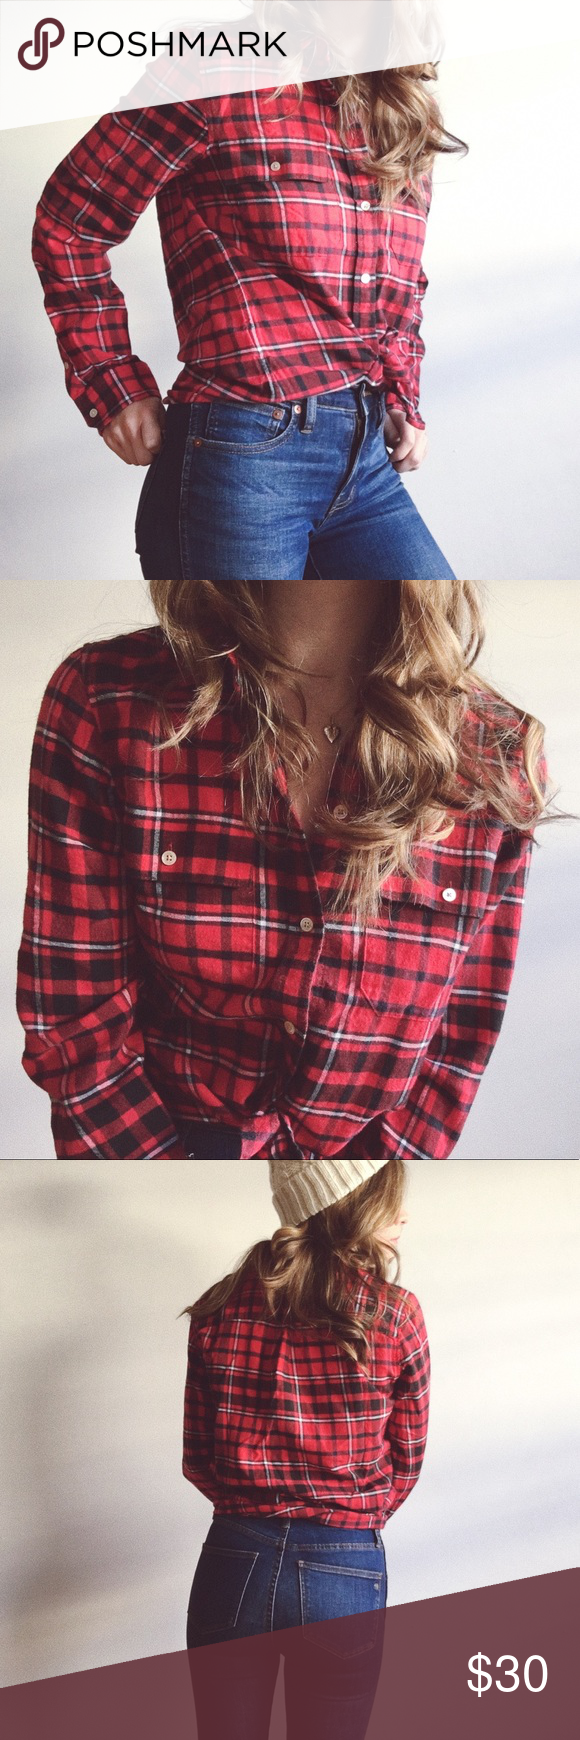 Red flannel fabric  Lightweight Plaid Flannel  Pinterest  Tartan Flannels and White plaid